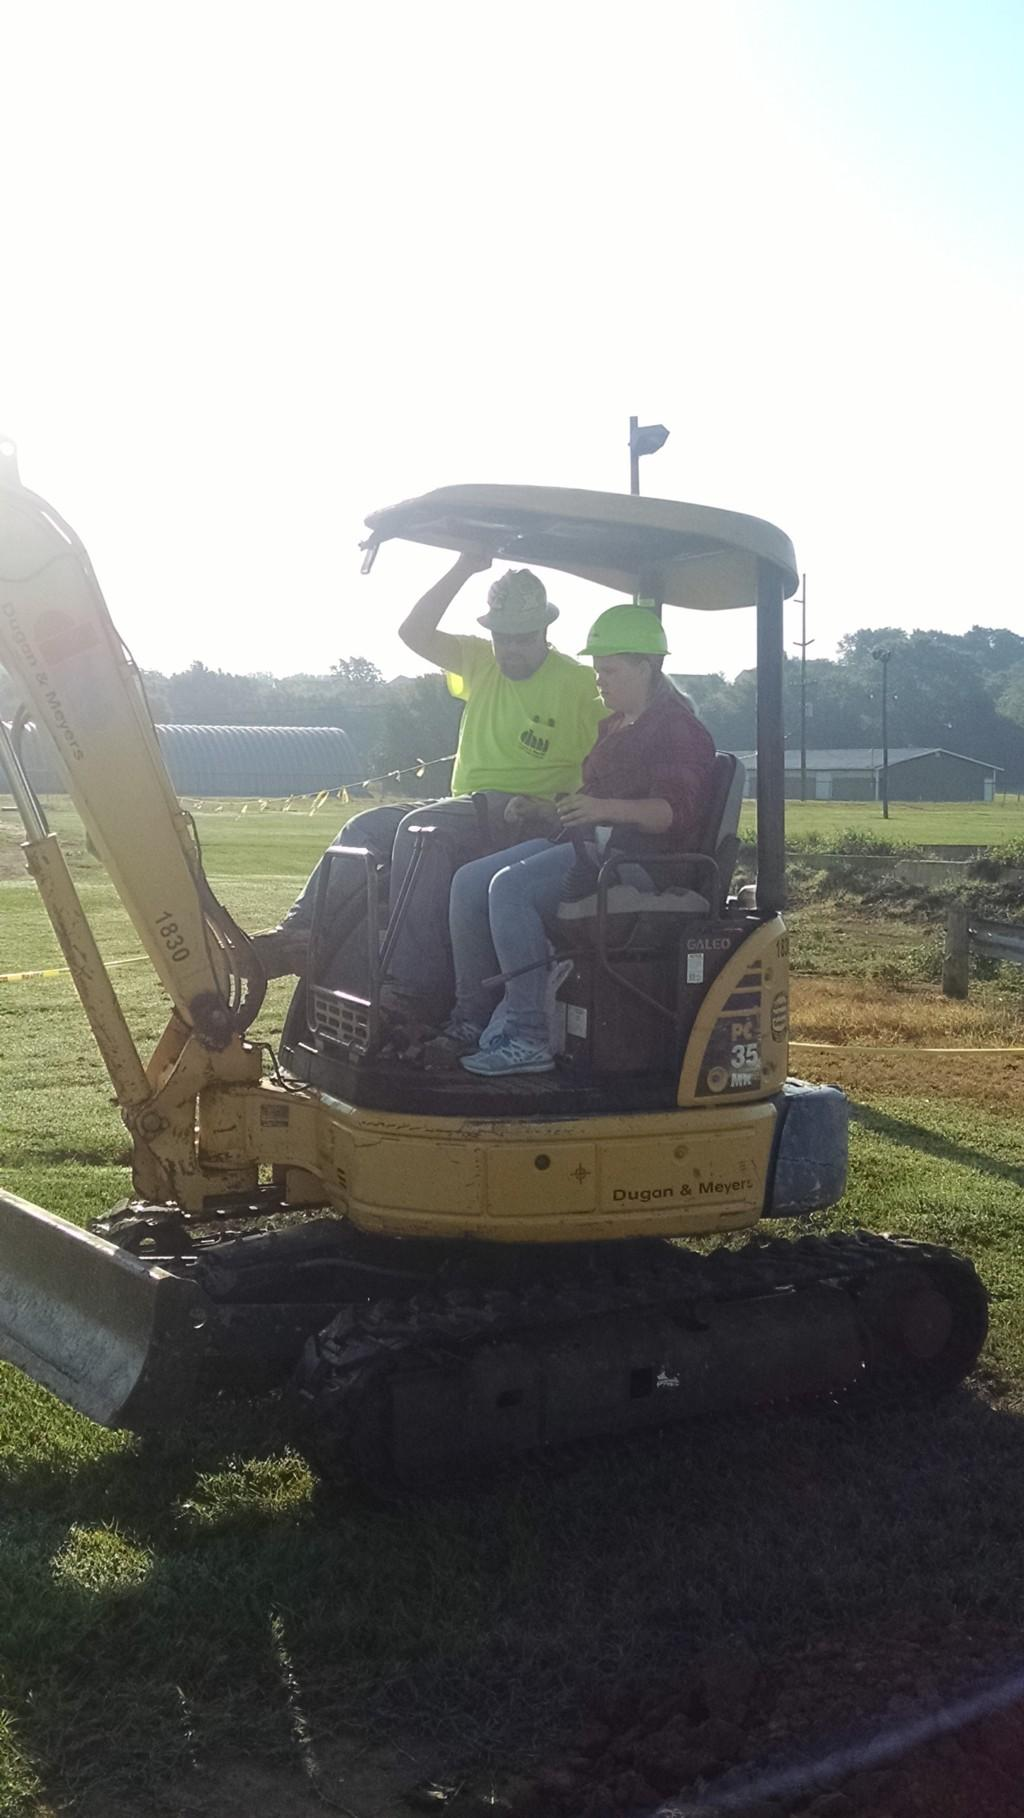 Student operating heavy construction equipment.